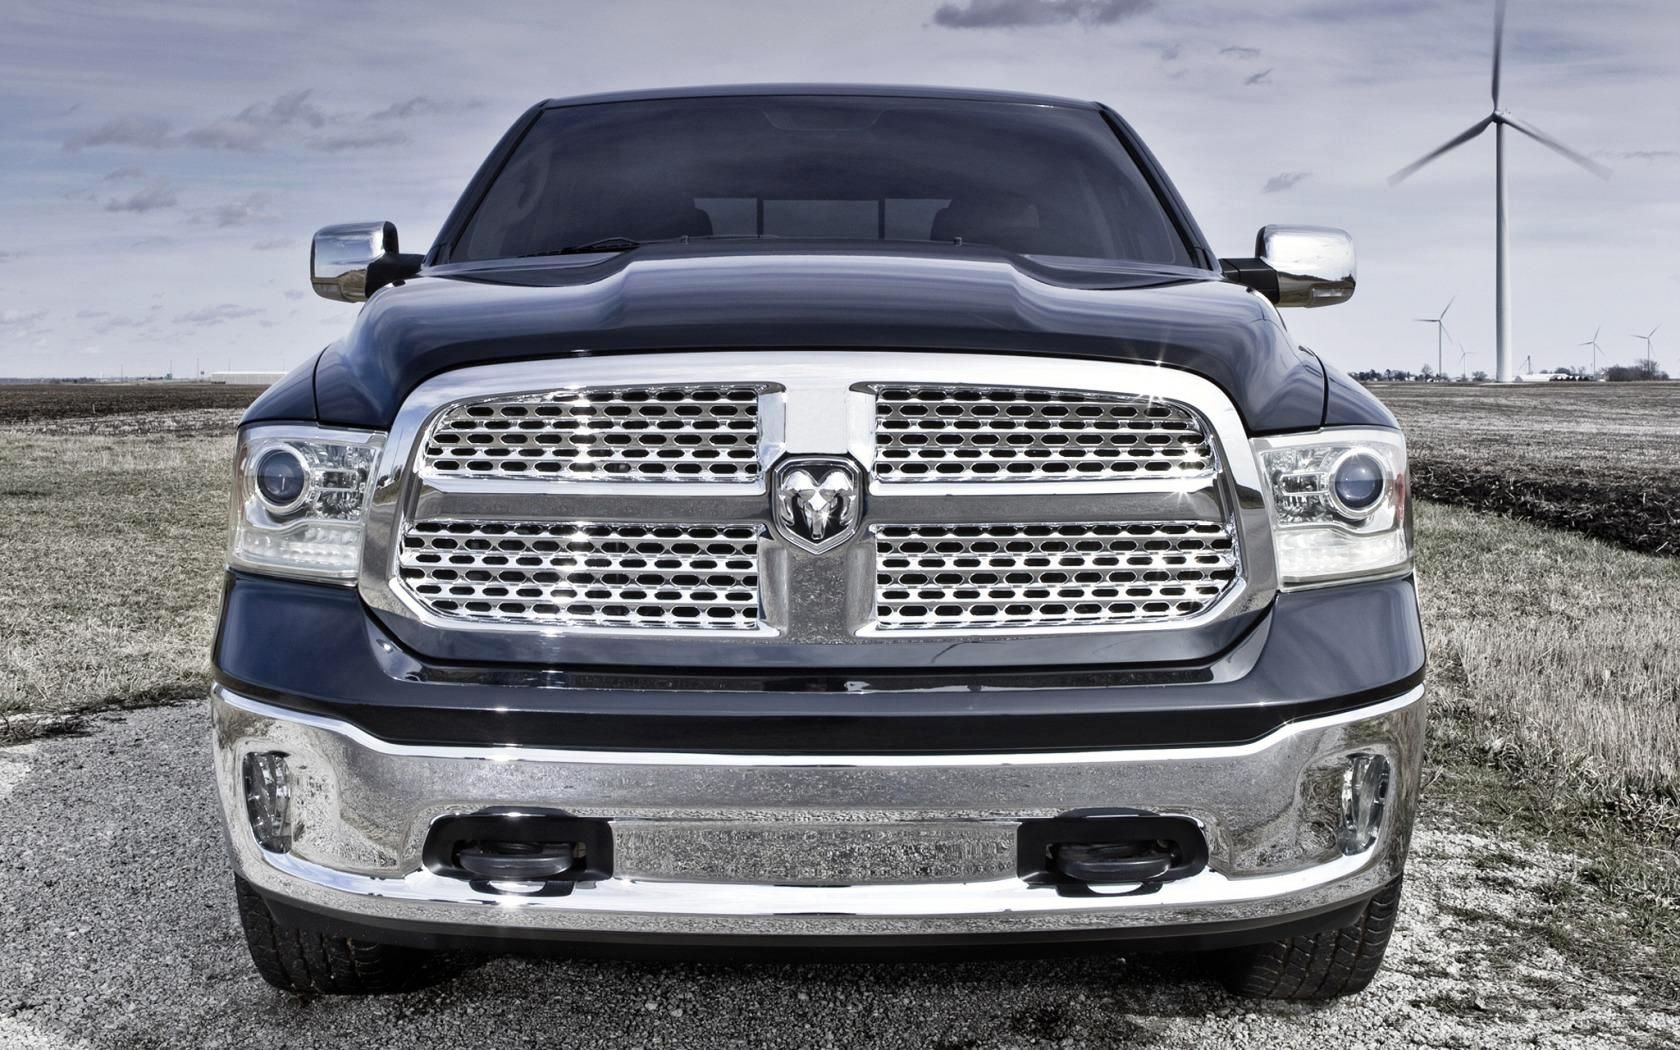 New 2016 Ram Suv Prices Msrp Specs Reviews Price List And Features Models Cnynewcars